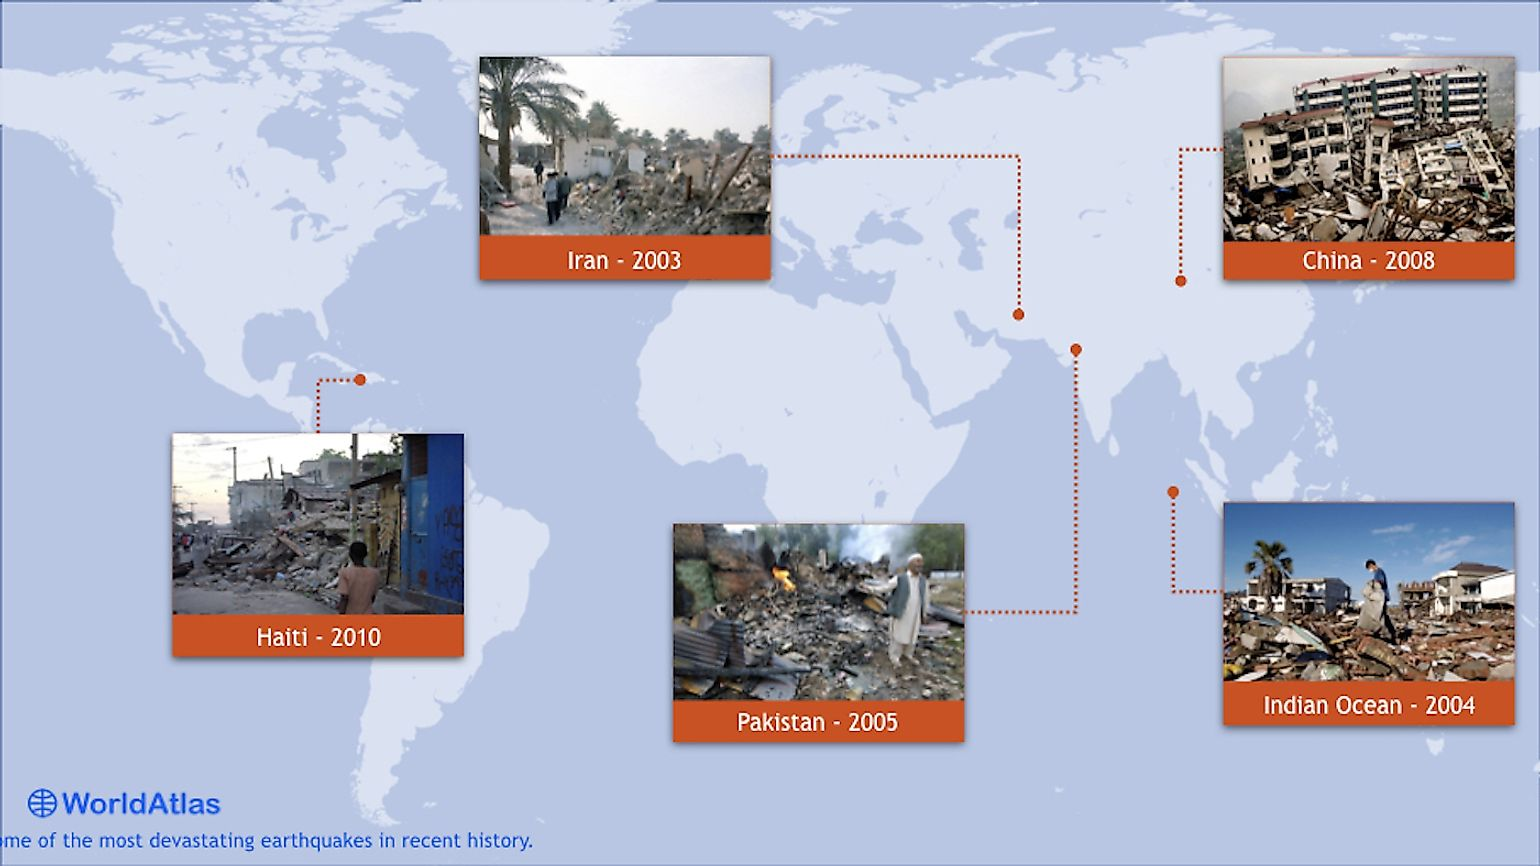 The Deadliest Earthquakes Of The 21st Century